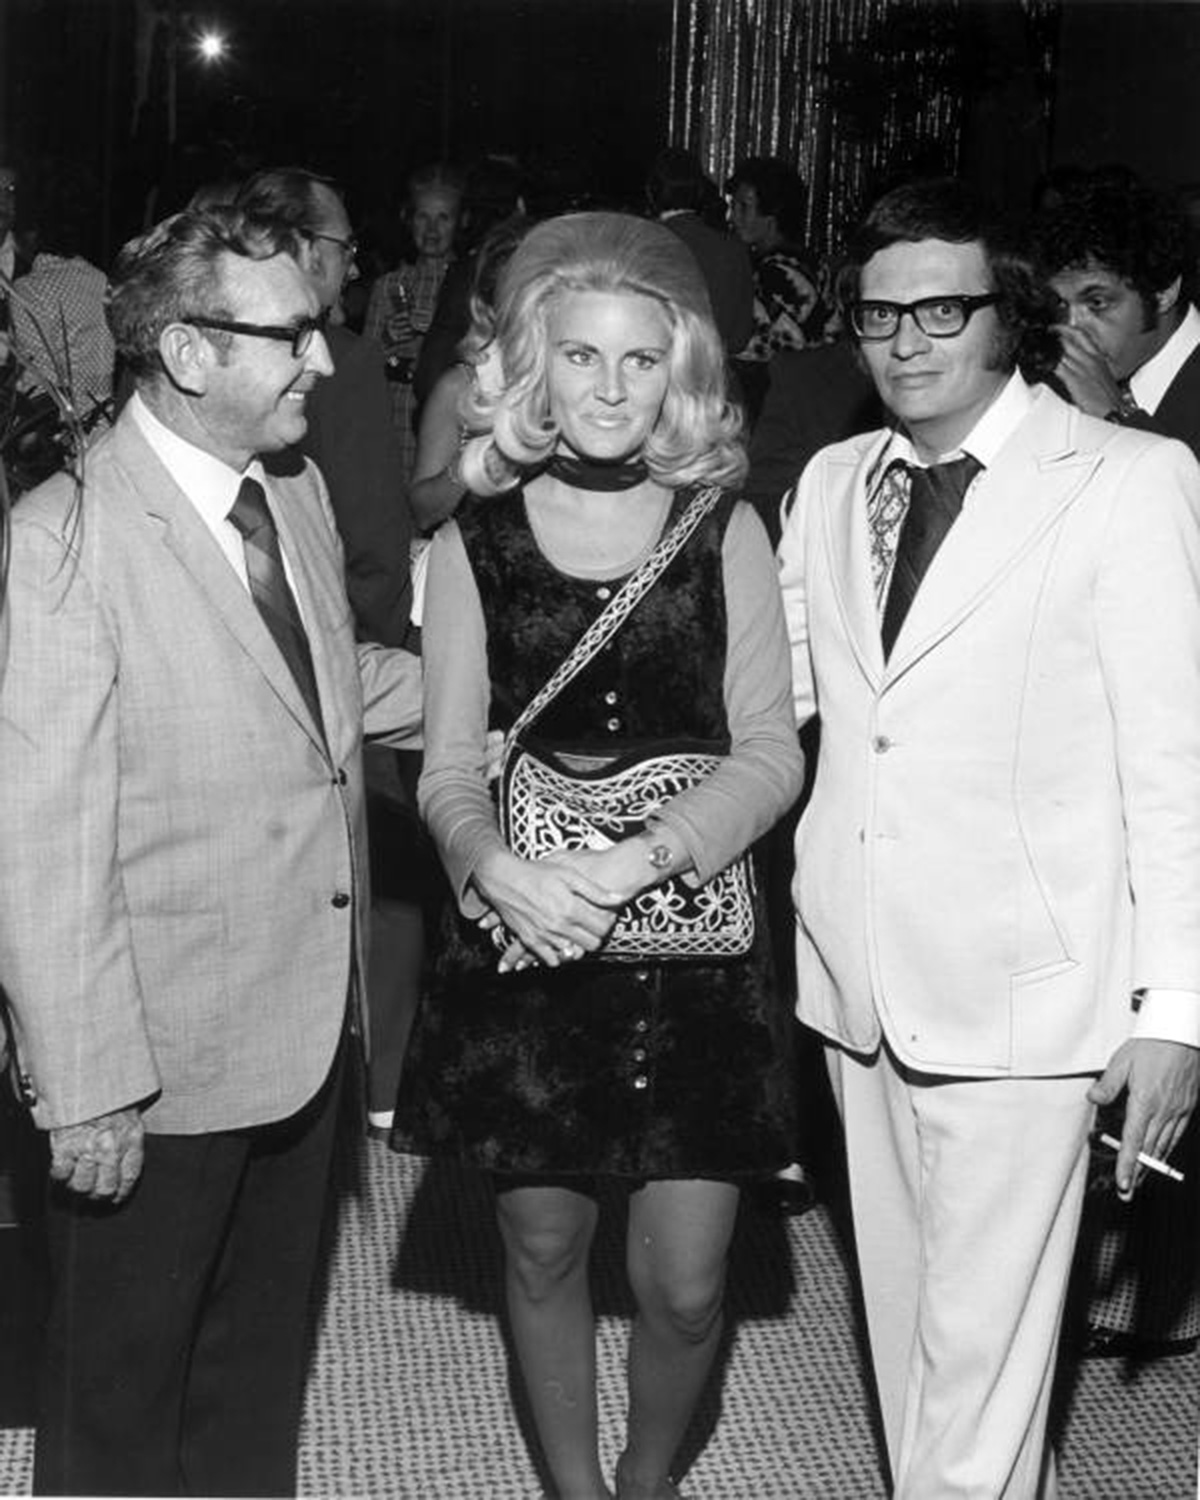 Alene Akins, former Playboy bunny, and Larry King